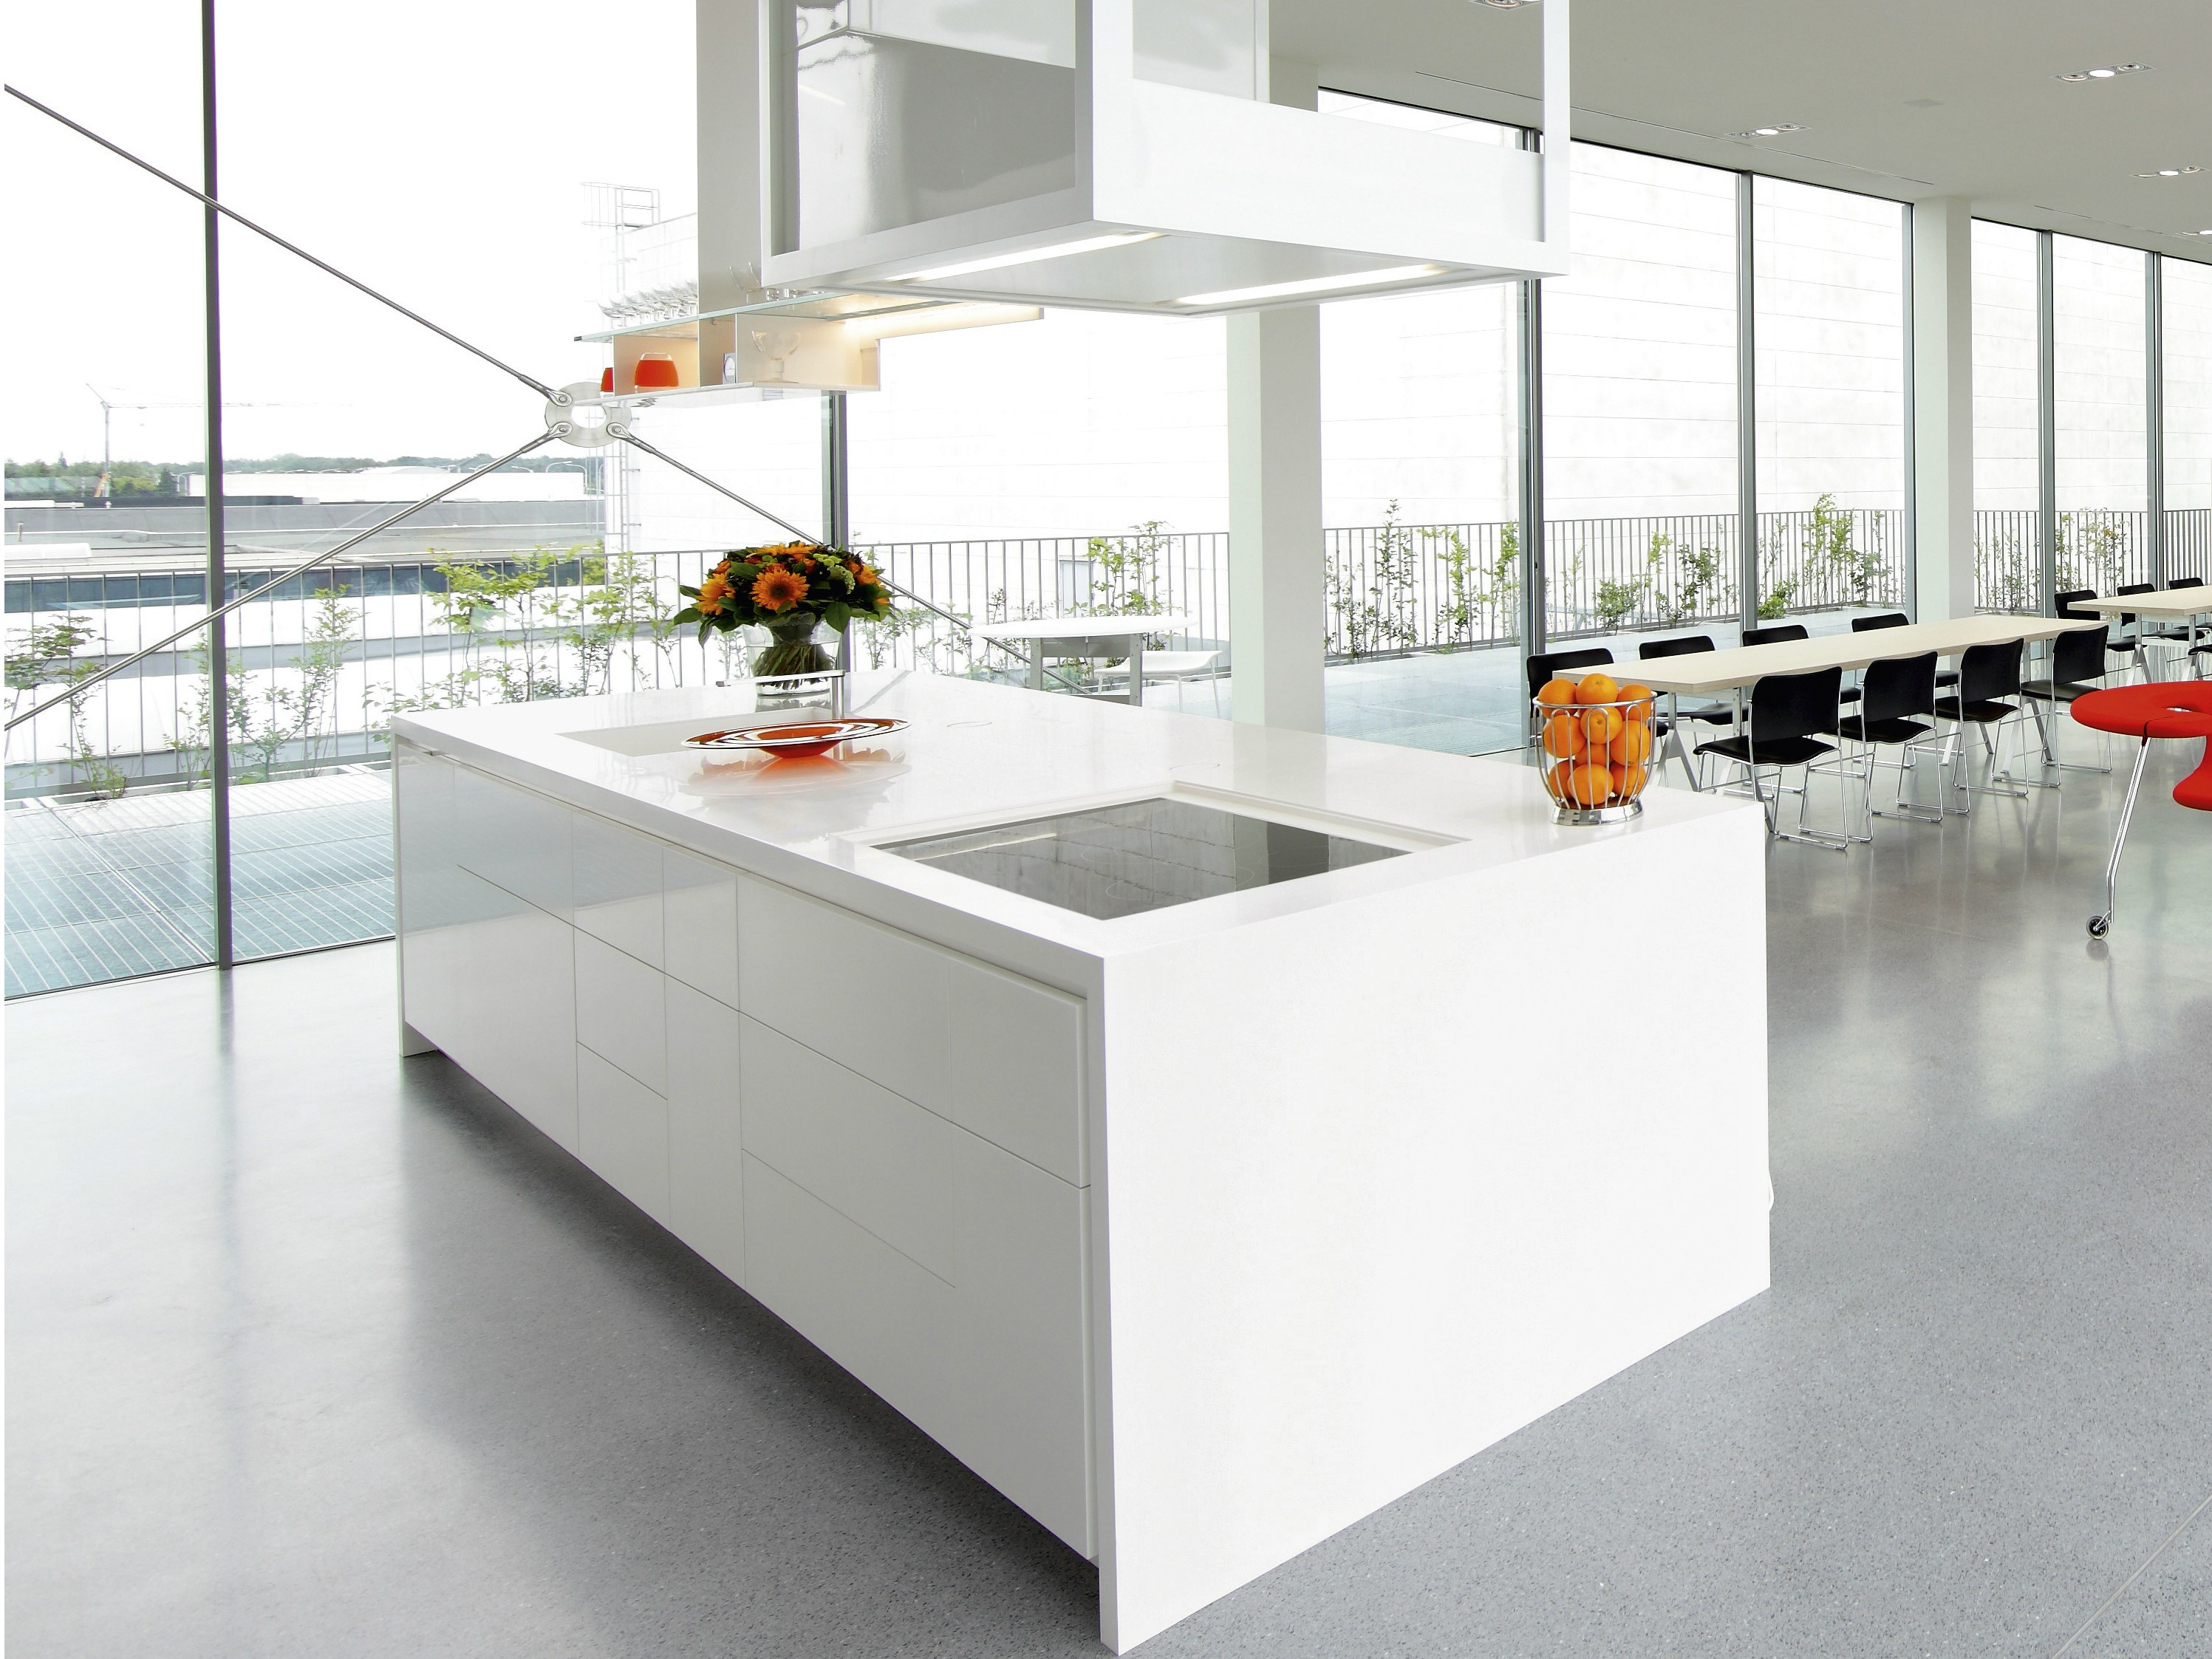 Getacore 174 Kitchen By Getacore 174 By Westag Amp Getalit Design